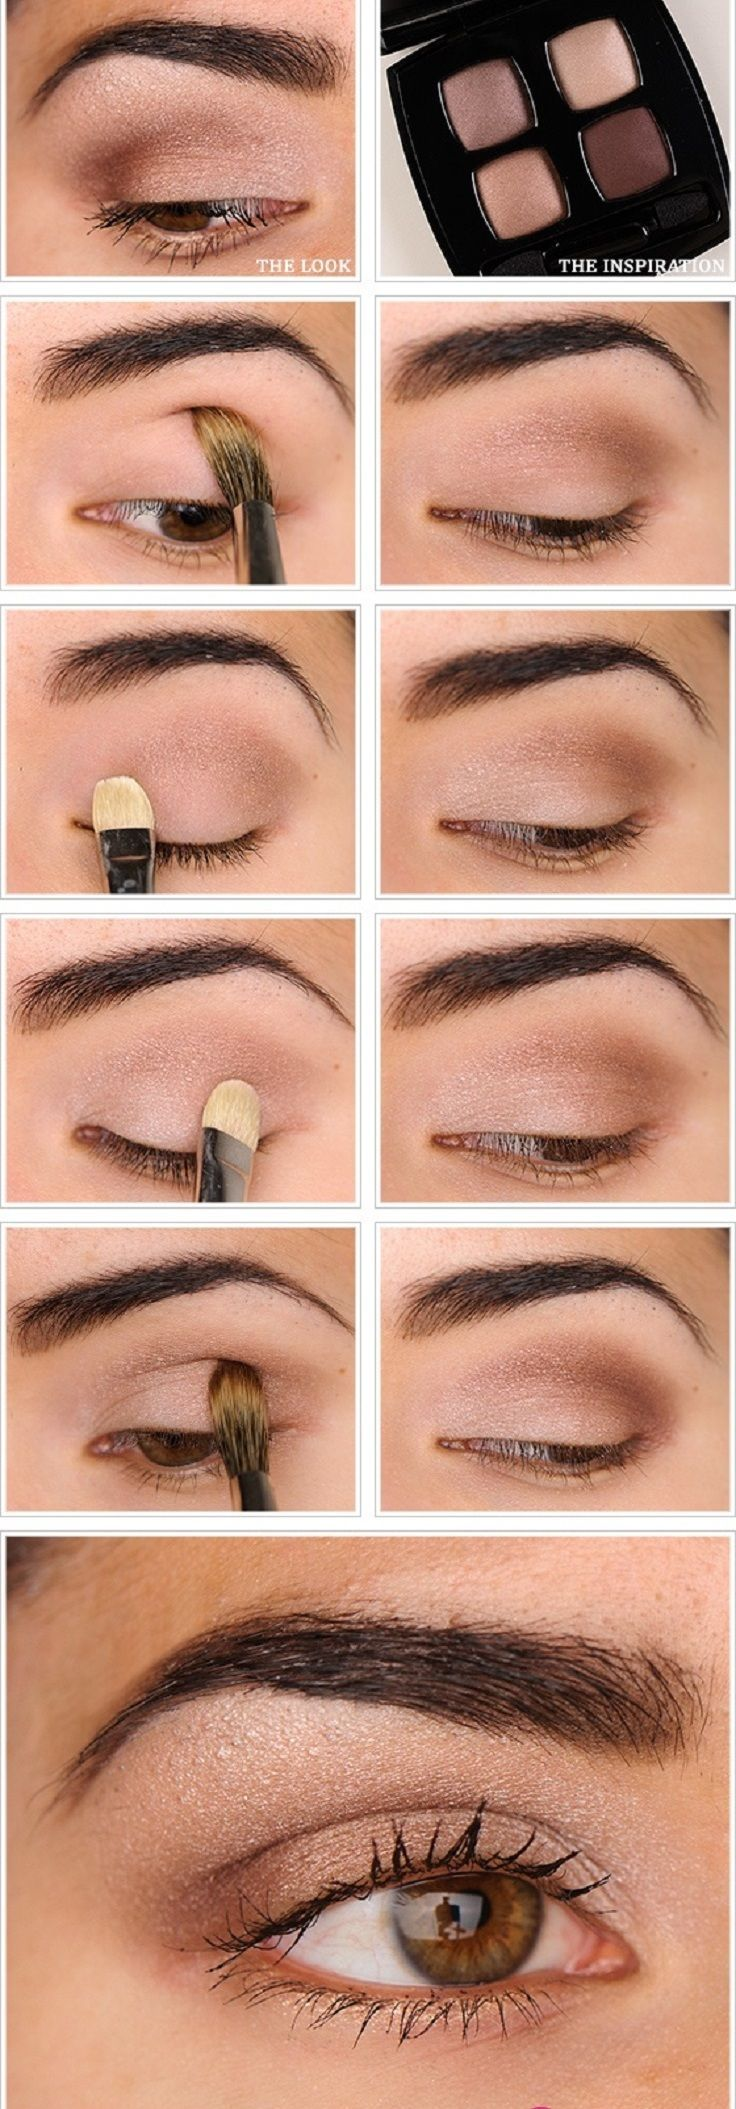 Top 10 Tutorials for Natural Eye Make-Up – Top Inspired Have you seen the new promotion Real Techniques brushes makeup -$10 youtu.be/Ekd8siFfdNA #realtechniques #realtechniquesbrushes #makeup #makeupbrushes #makeupartist #brushcleaning #brushescleaning #brushes